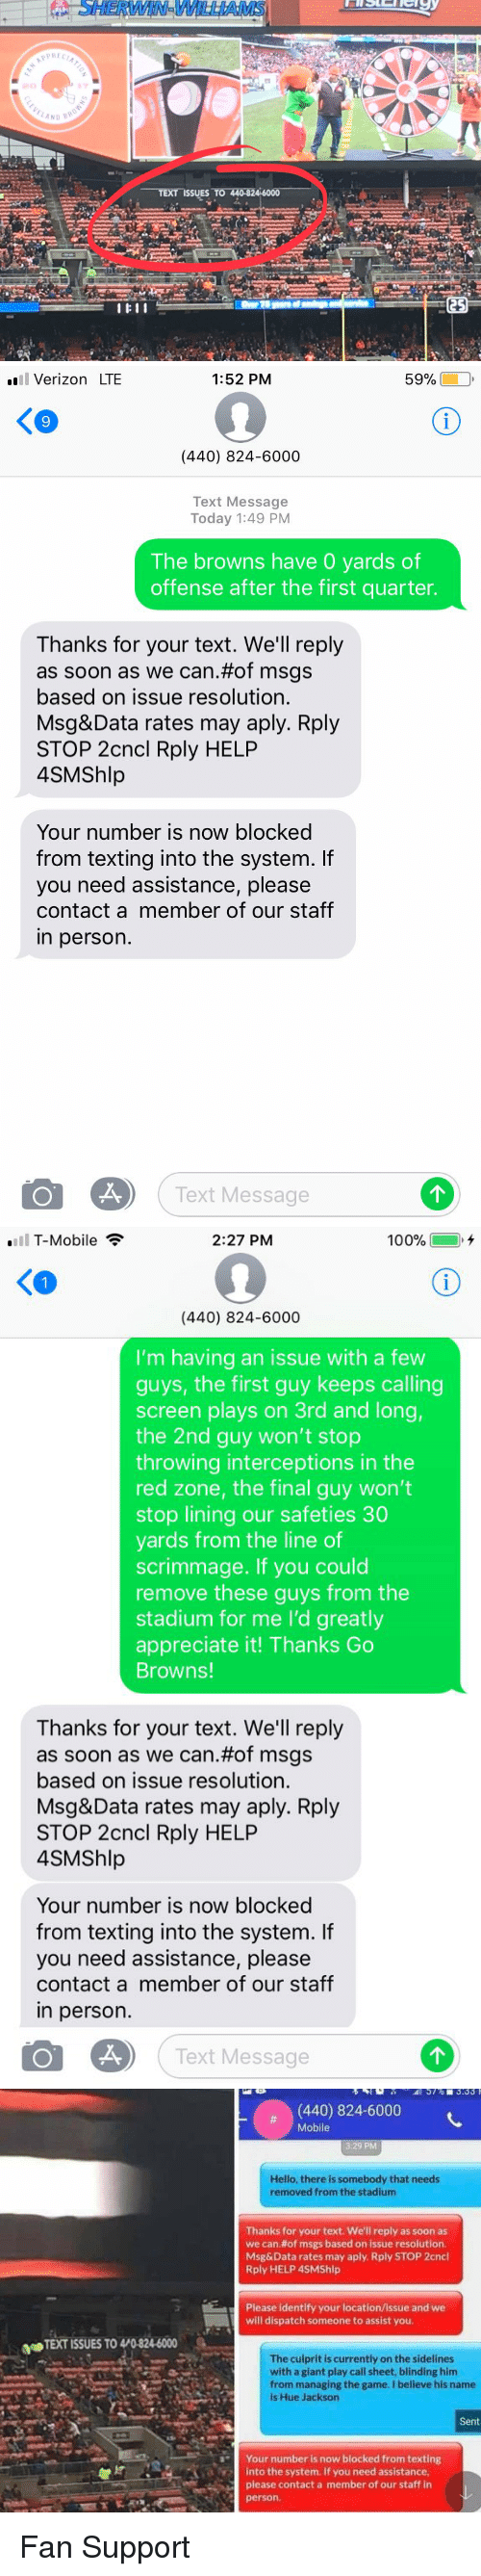 Anaconda, Hello, and Nfl: SHERWIN, WILLIAMS  ND BR  TEXT-ISSUES TO 440-824-6000   l Verizon LTE  1:52 PM  59%  KO  9  (440) 824-6000  Text Message  Today 1:49 PM  The browns have 0 yards of  offense after the first quarter.  Thanks for your text. We'll reply  as soon as we can.#of msgs  based on issue resolution.  Msg&Data rates may aply. Rply  STOP 2cncl Rply HELP  4SMShlp  Your number is now blocked  from texting into the system. If  you need assistance, please  contact a member of our staff  in person.  Text Message   .111 T-Mobile  2:27 PM  100% @  i.+  KO  (440) 824-6000  I'm having an issue with a few  guys, the first guy keeps calling  screen plays on 3rd and long,  the 2nd guy won't stop  throwing interceptions in the  red zone, the final guy won't  stop lining our safeties 30  yards from the line of  scrimmage. If you could  remove these guys from the  stadium for me I'd greatly  appreciate it! Thanks Go  Browns!  Thanks for your text. We'll reply  as soon as we can.#of msgs  based on issue resolution.  Msg&Data rates may aply. Rply  STOP 2cncl Rply HELP  4SMShlp  Your number is now blocked  from texting into the system. f  you need assistance, please  contact a member of our staff  in person.  Text Message   (440) 824-6000  Mobile  3:29 PM  Hello, there is somebody that needs  removed from the stadium  Thanks for your text. We'll reply as soon as  we can#of msgs based on issue resolution.  Msg&Data rates may aply. Rply STOP 2cncl  Rply HELP 4SMShlp  Please identify your location/issue and we  will dispatch someone to assist you.  TEXT ISSUES TO 4/0-824-6000  The culprit is currently on the sidelines  with a giant play call sheet, blinding him  from managing the game. I believe his name  is Hue Jackson  Sent  Your number is now blocked from texting  into the system. If you need assistance  please contact a member of our staff in  person. Fan Support